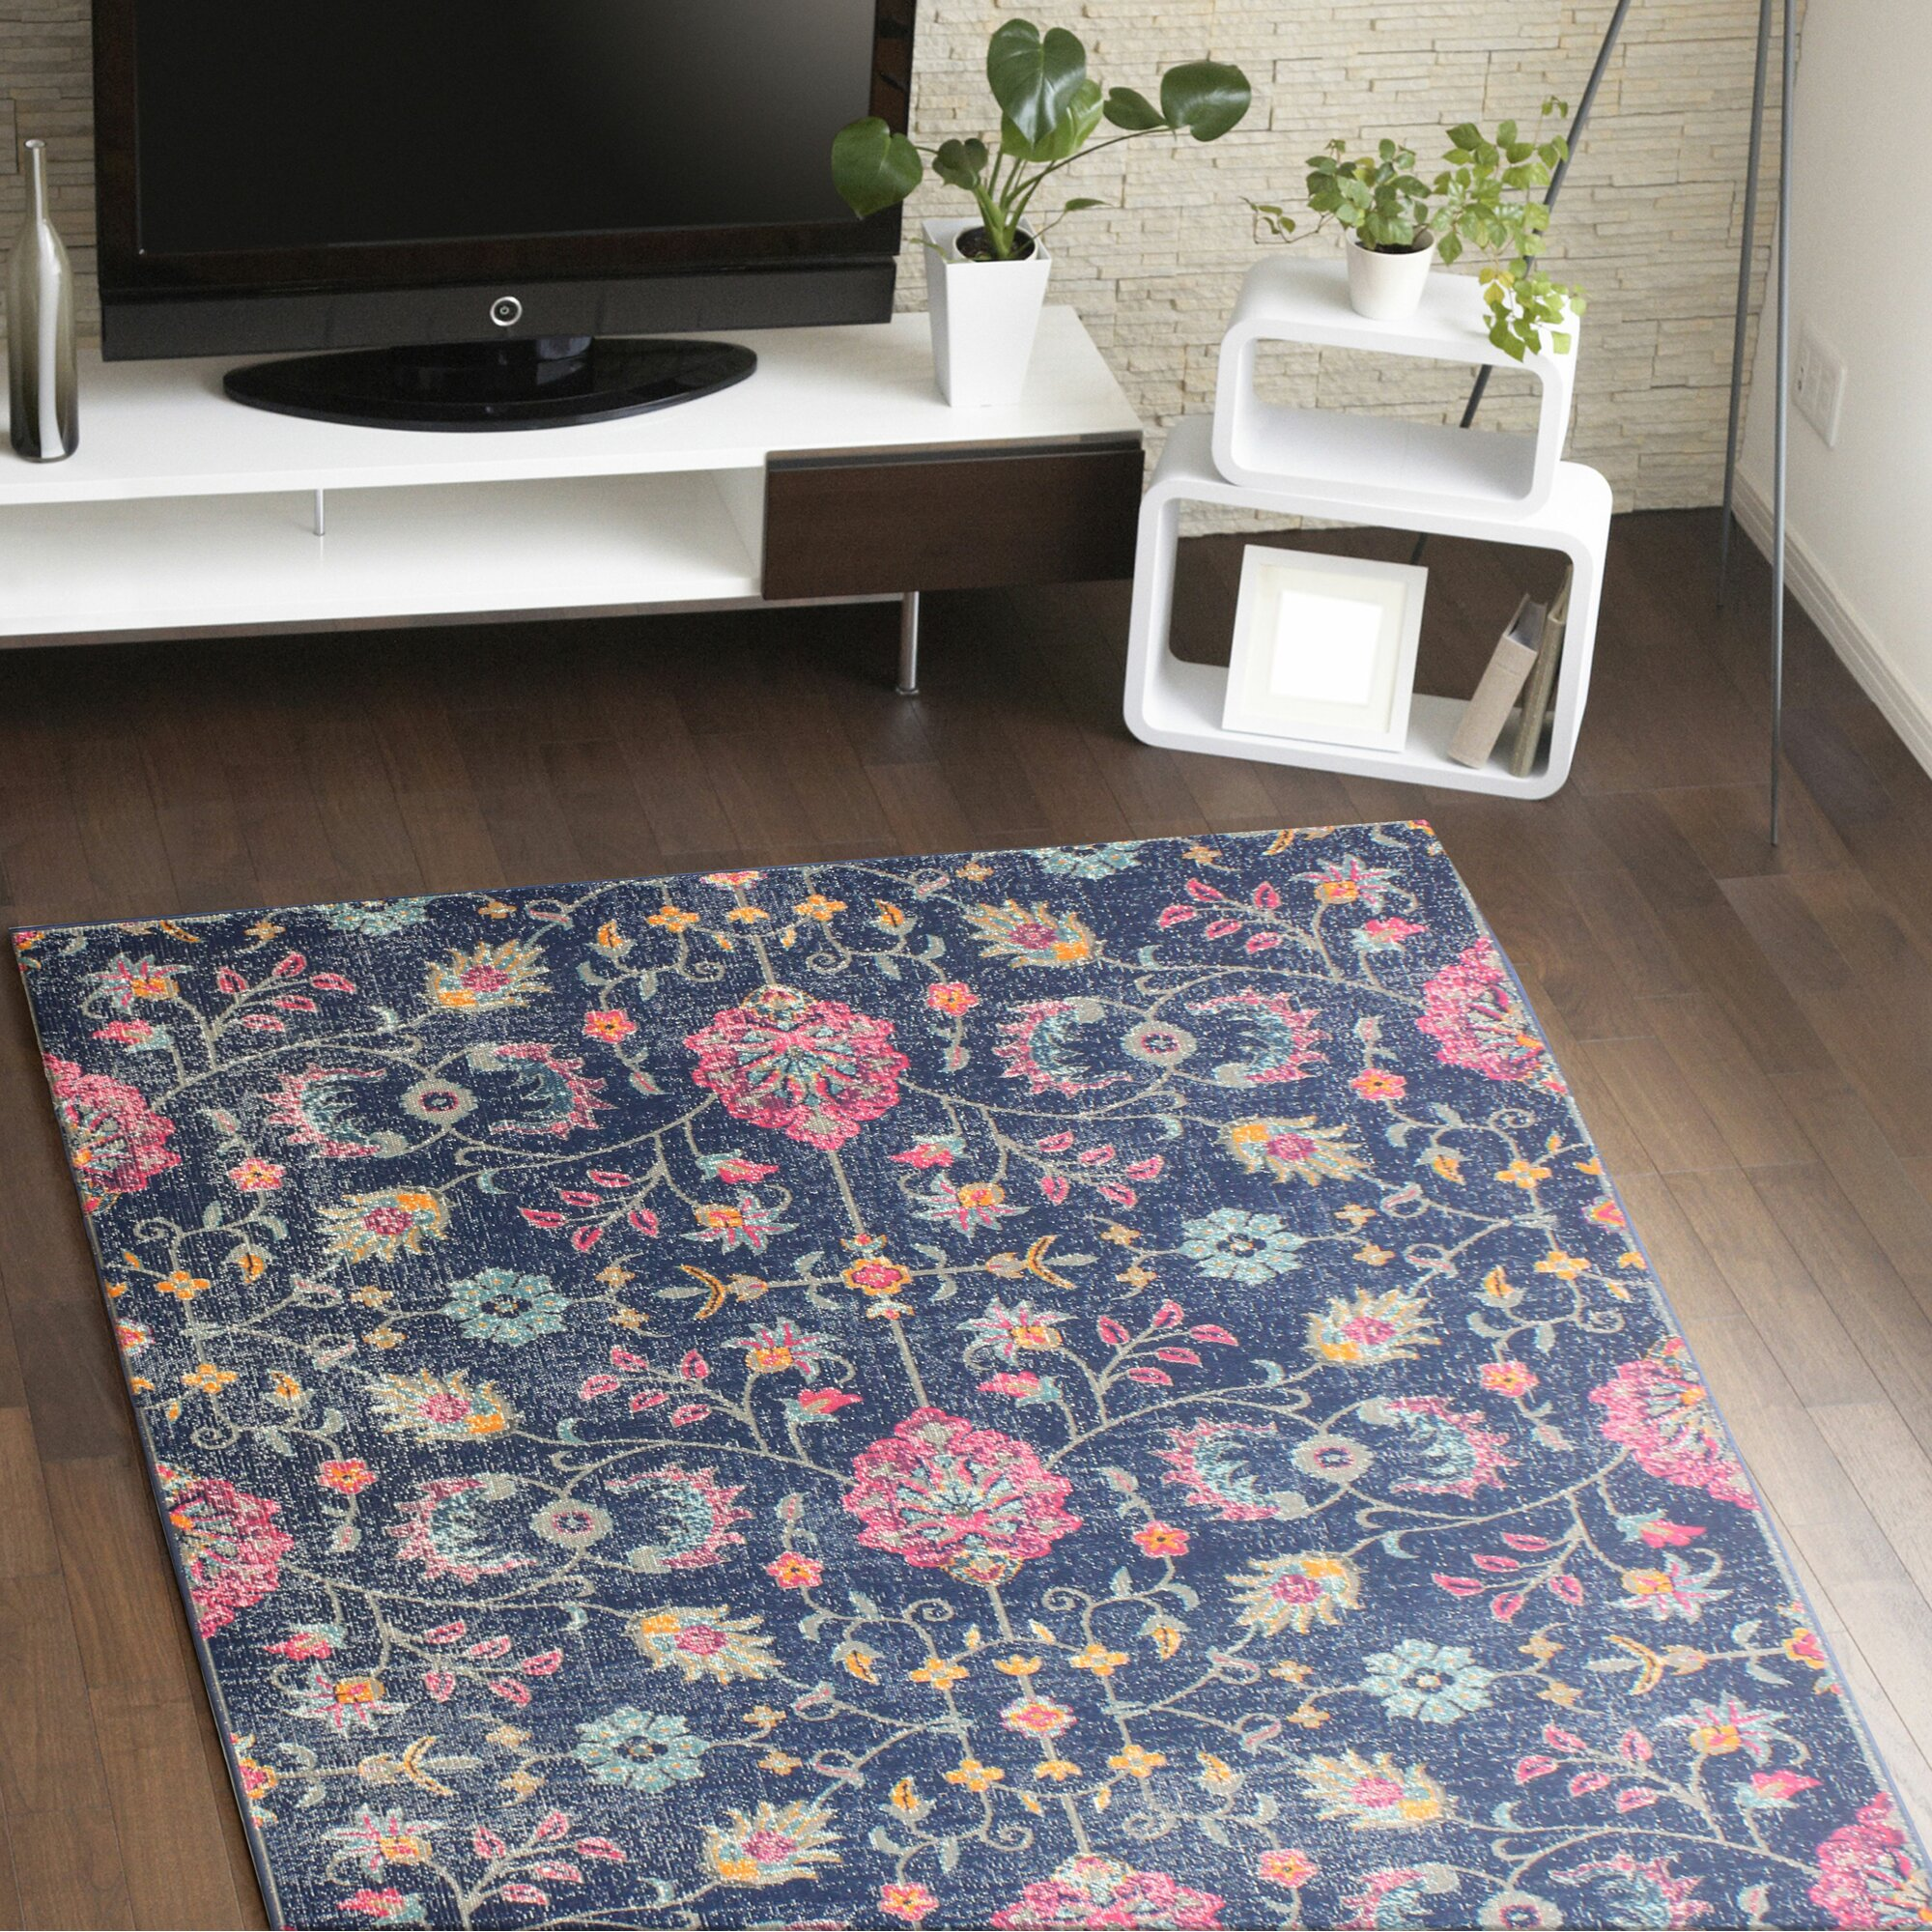 ikat flooring space paris bath design metallic fluffy carpets salmon cool aqua rugs your living colored rug neutral for white chic area wayfair coral and navy joss main